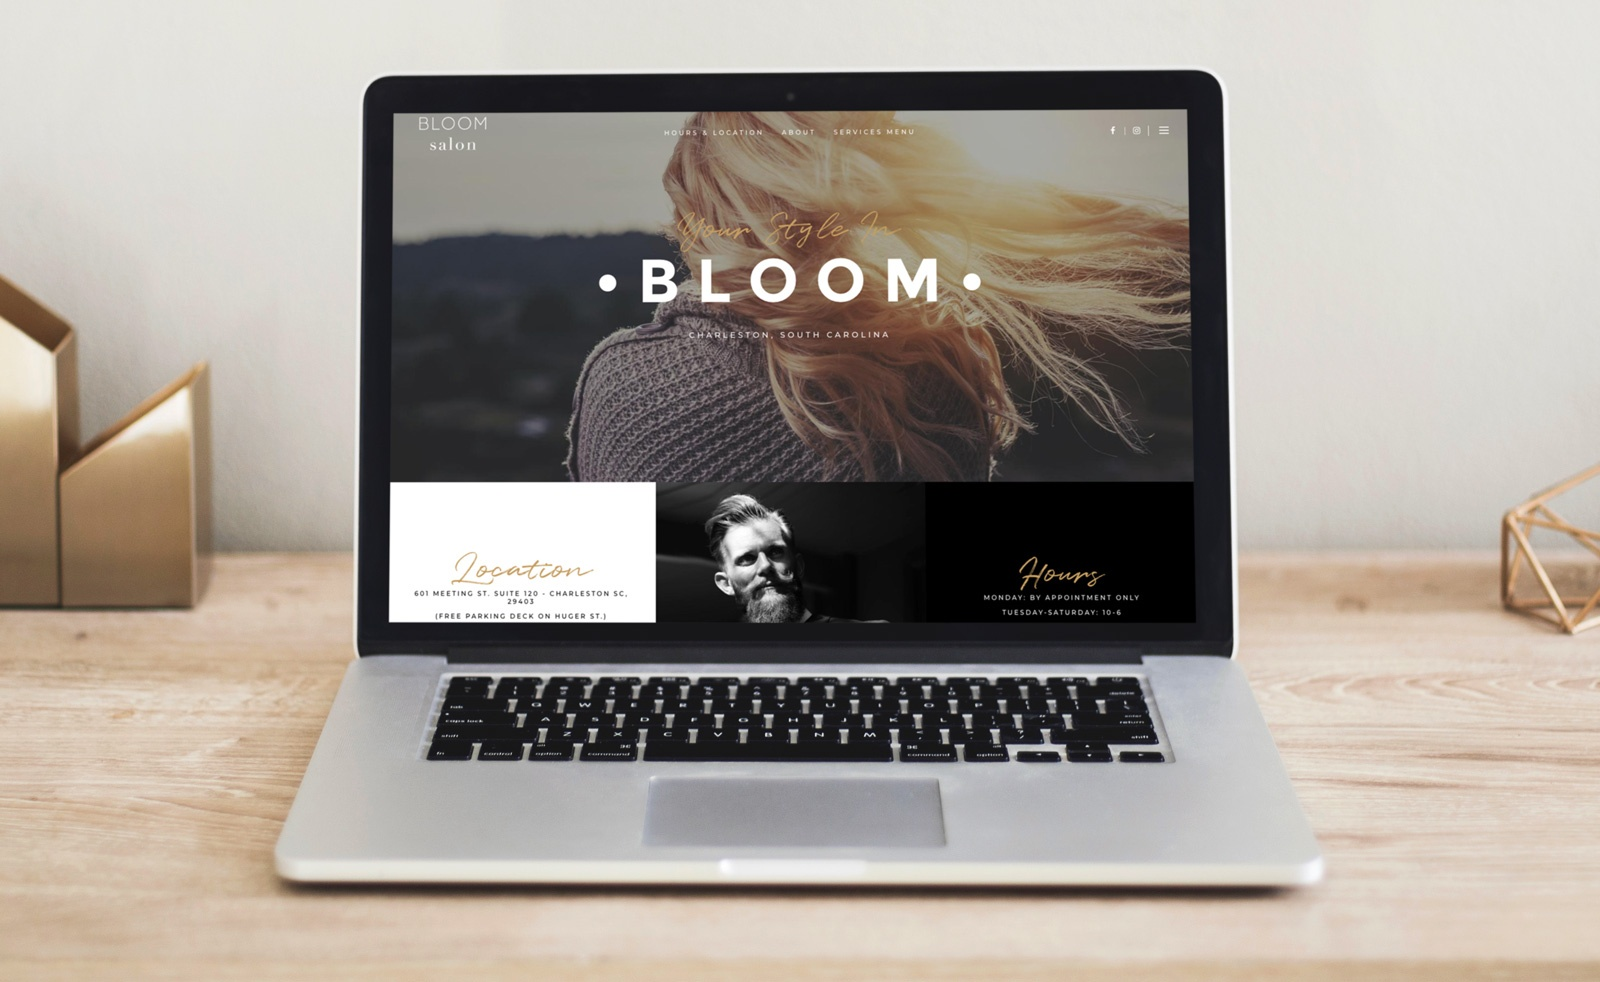 Bloom Salon Charleston